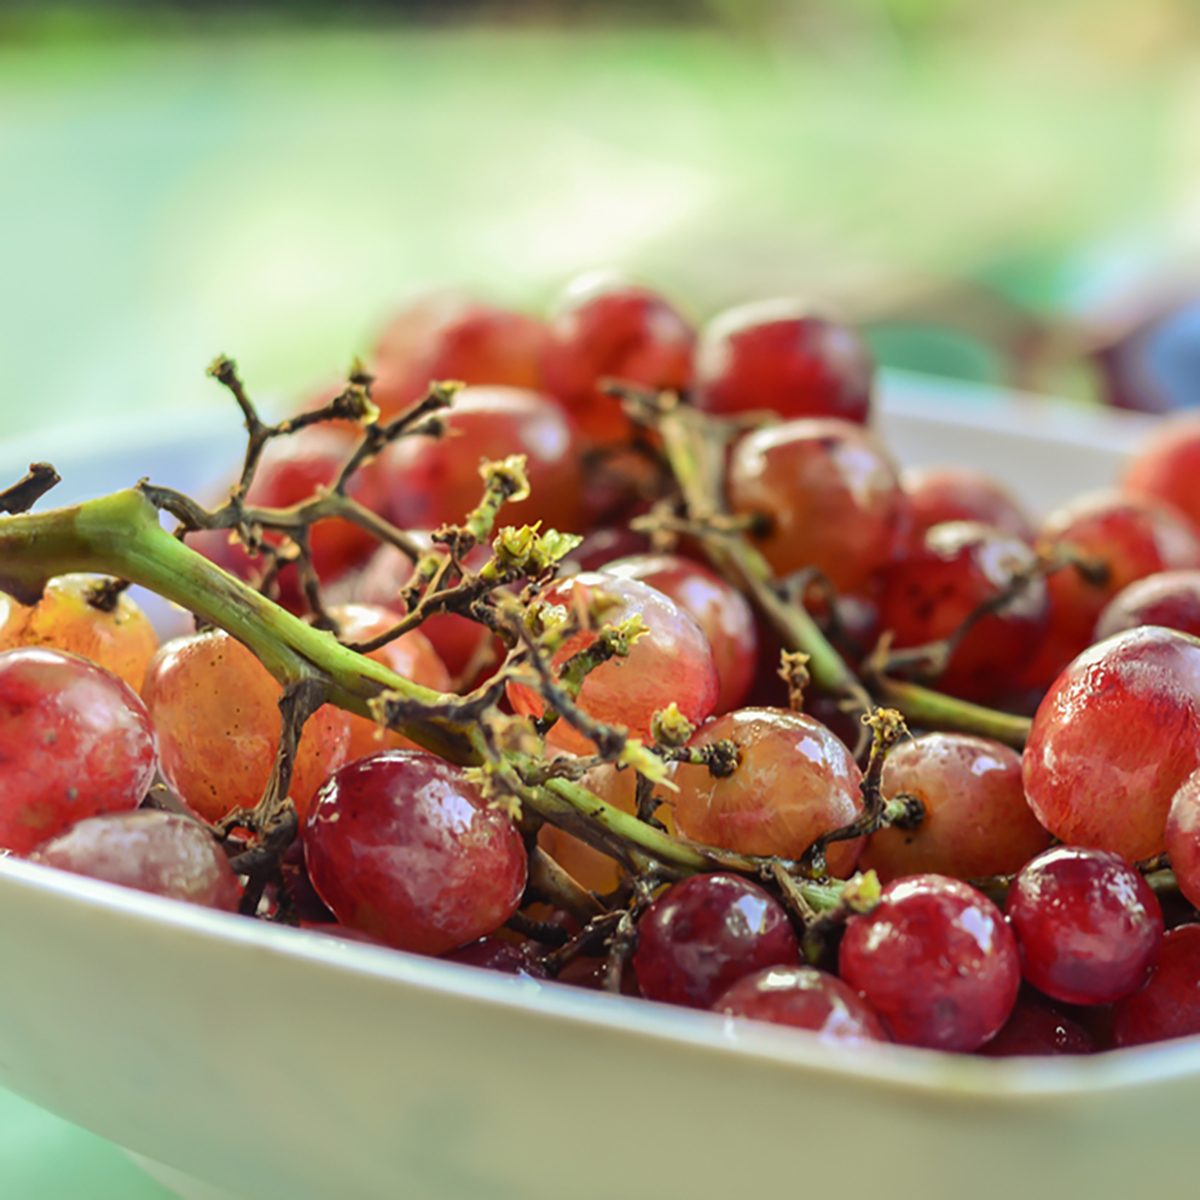 Red grapes on a plate